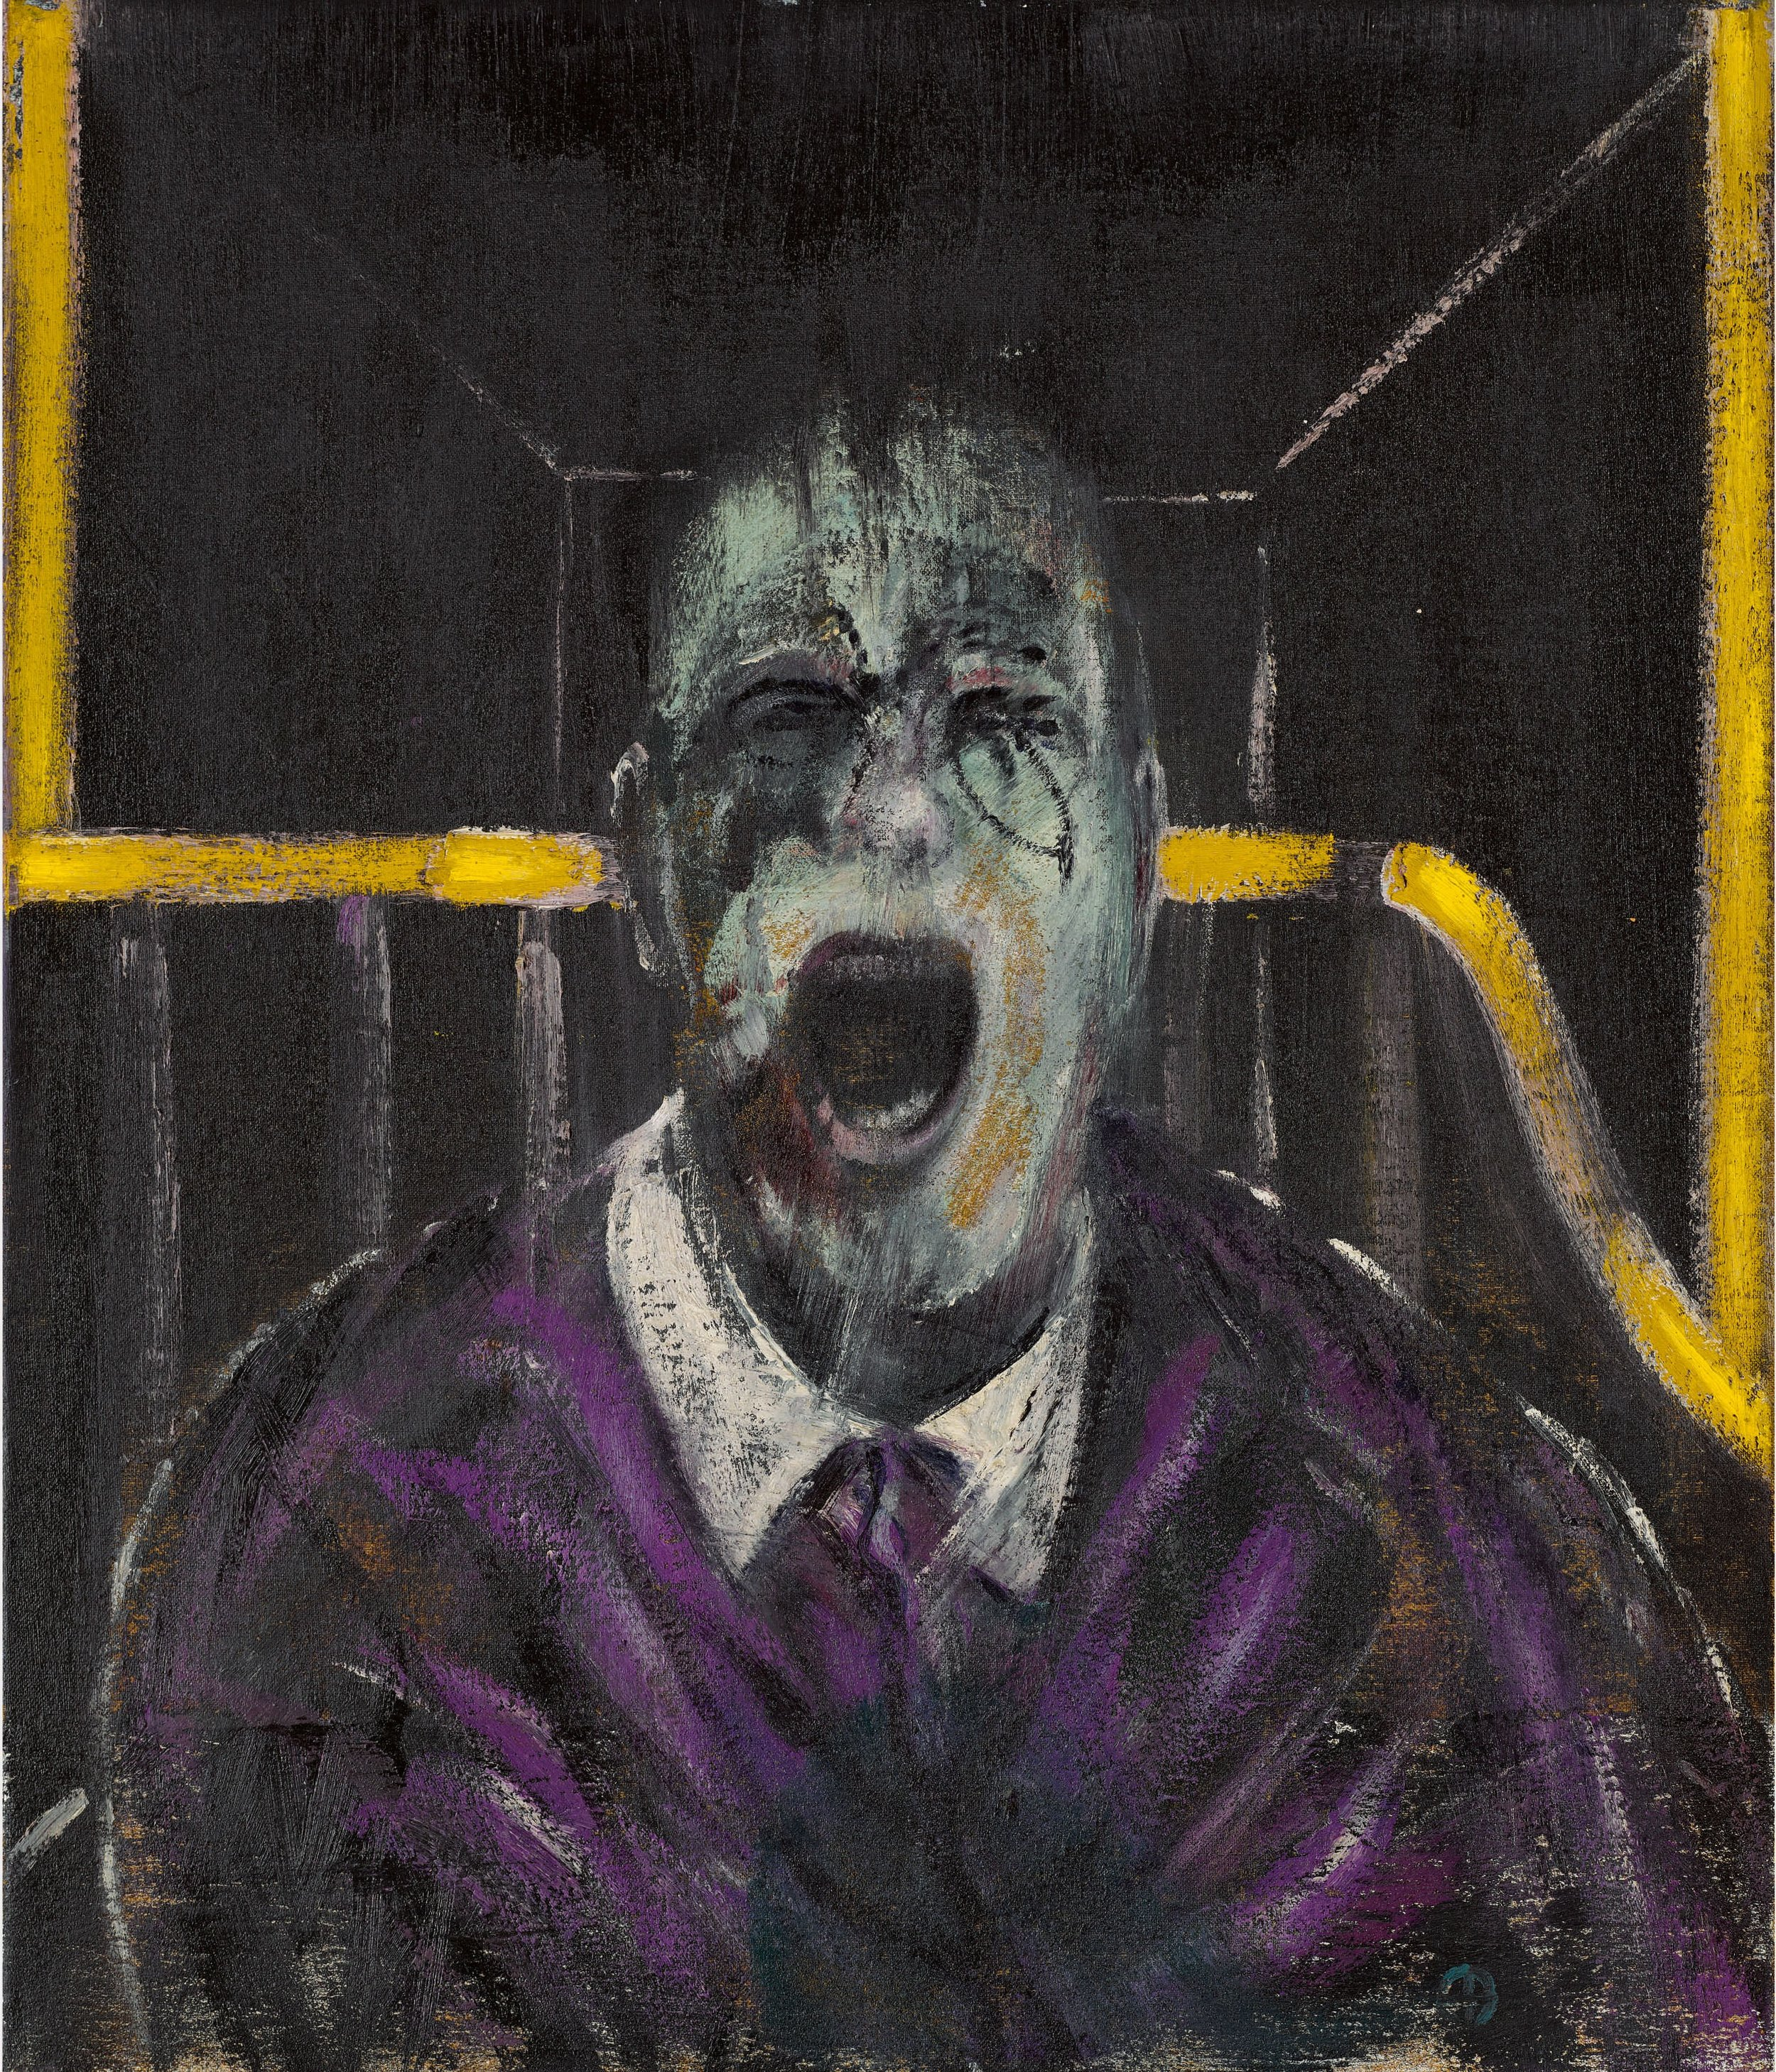 The pain of the postwar world: Francis Bacon'sStudy for a Head(1952), which sold for $50.4m to dealer Christopher Eykyn at Sotheby's came from the collection of Richard E. Lang and Jane Lang Davis. Courtesy Sotheby's